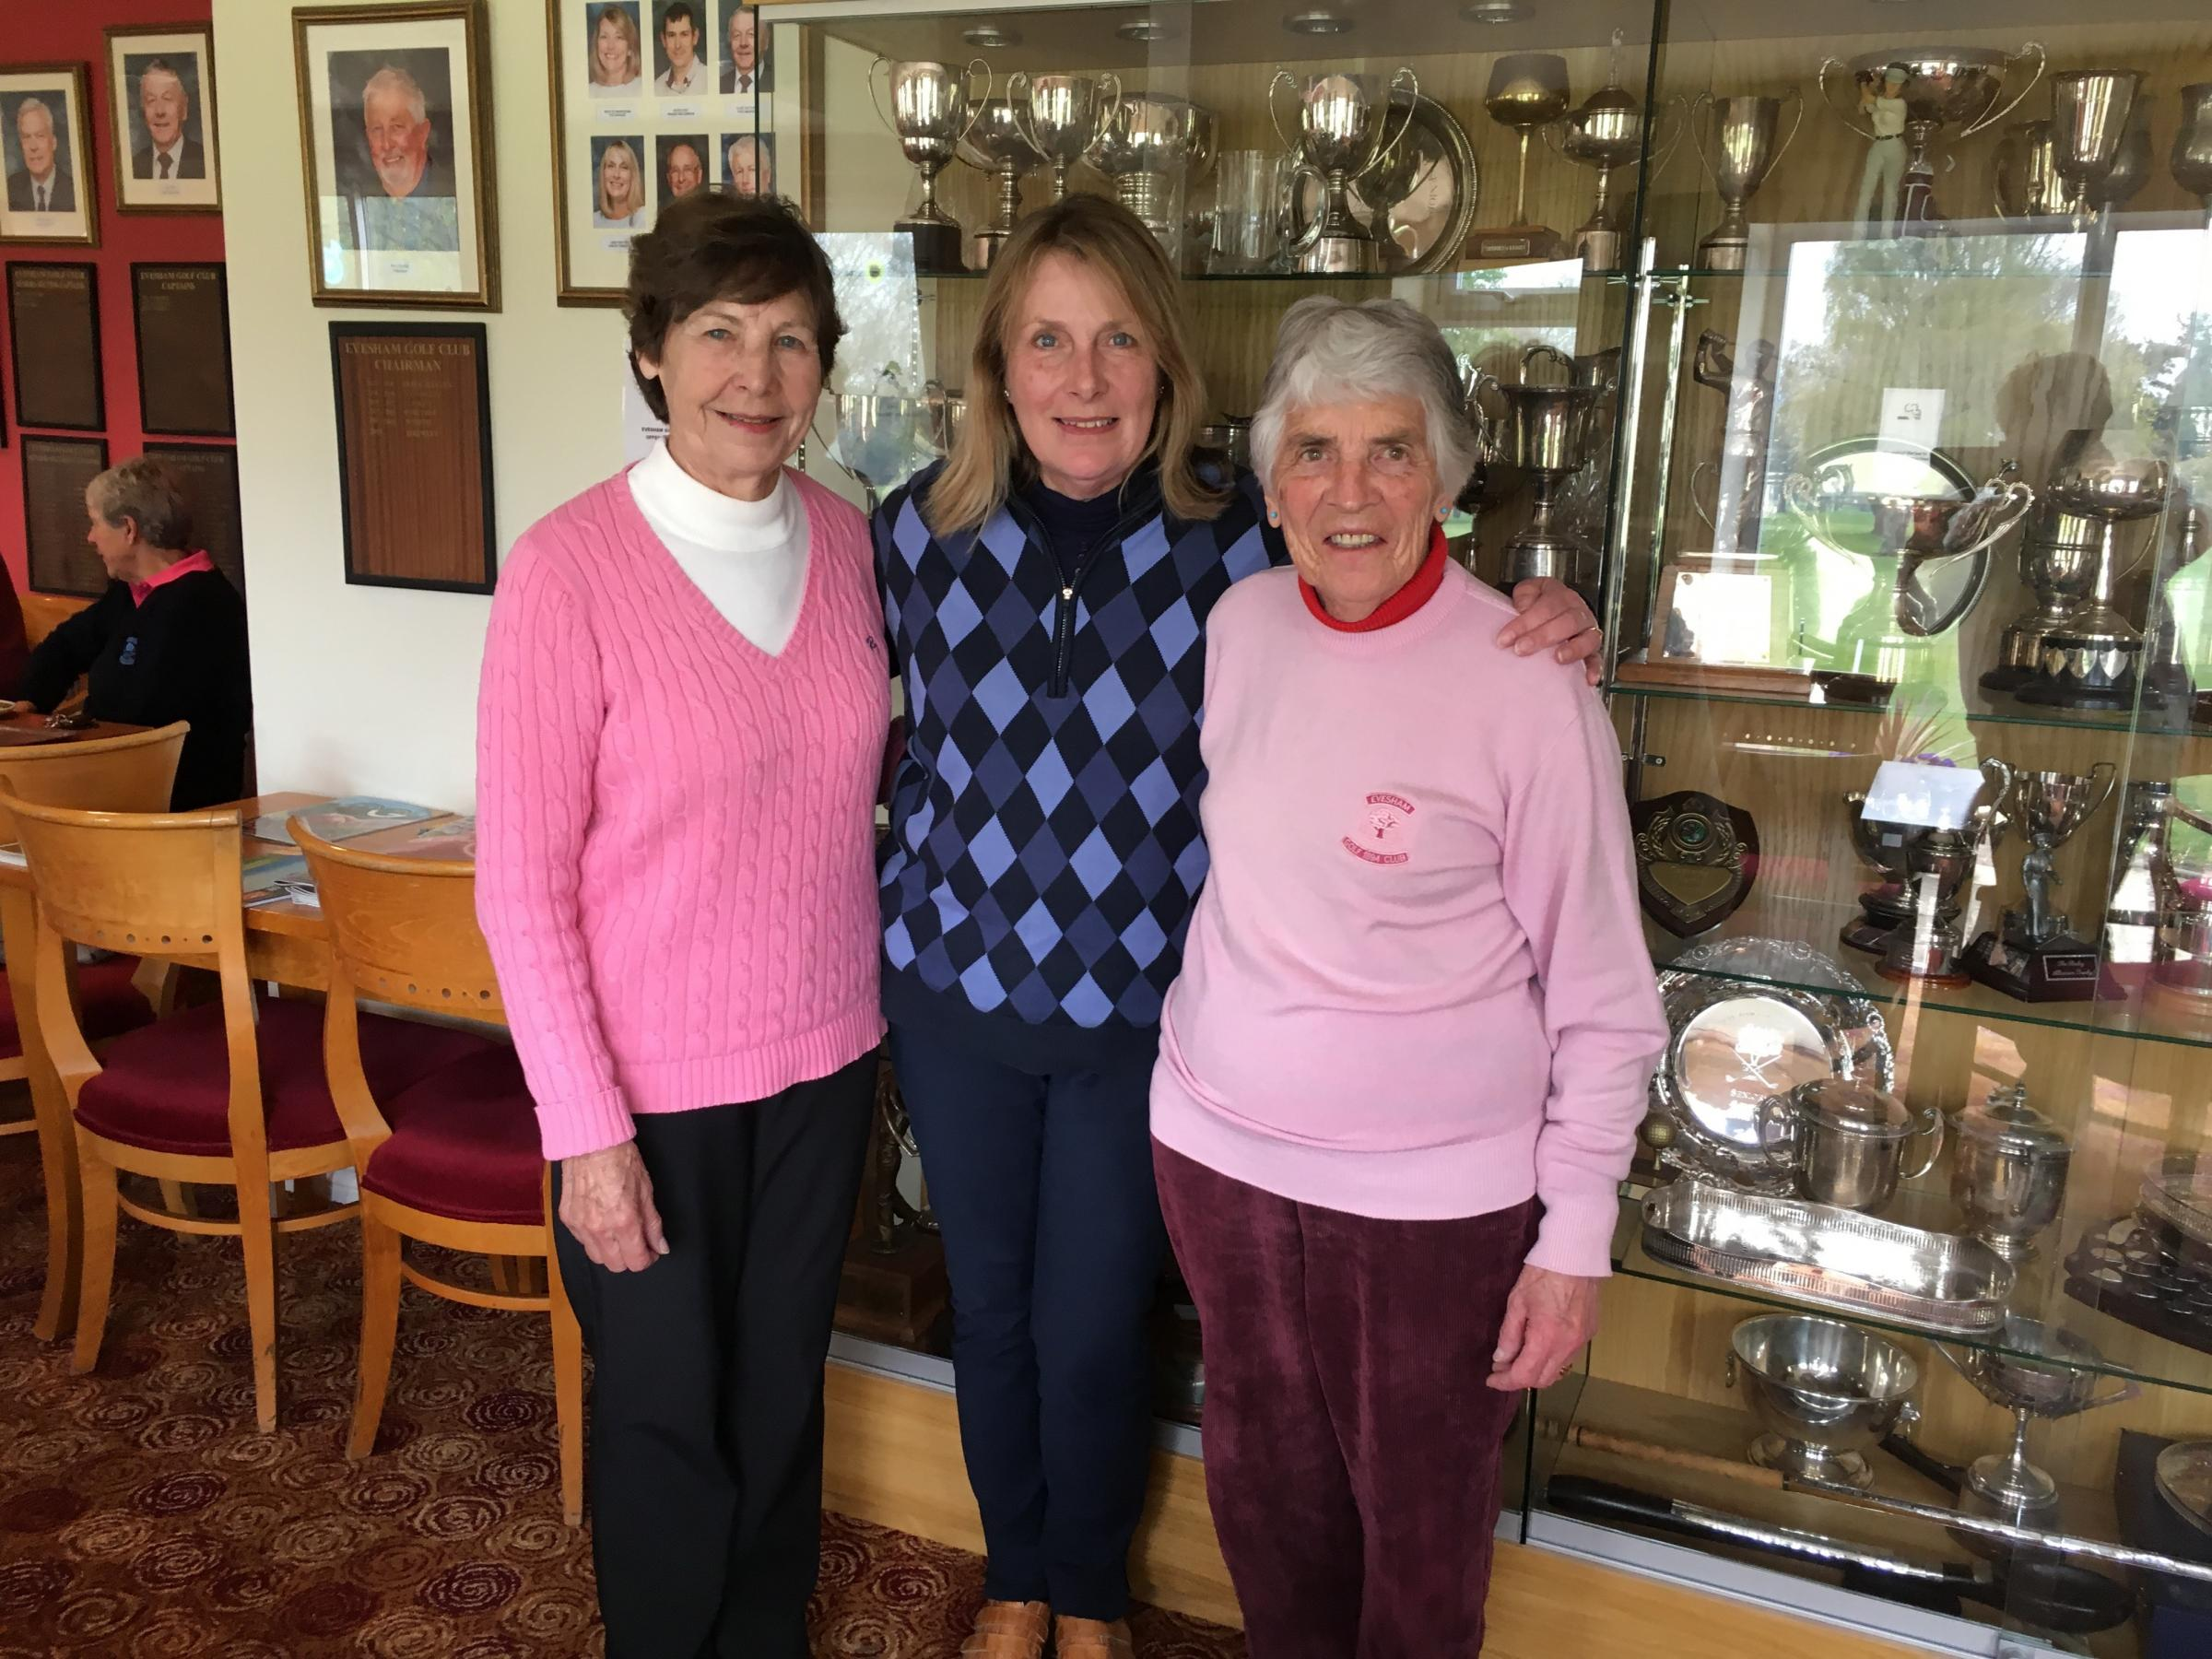 Evesham Golf Club's Vina Kite, lady captain Lesley Curnock and Carol Yates. Picture: ANGELA BUDDEN